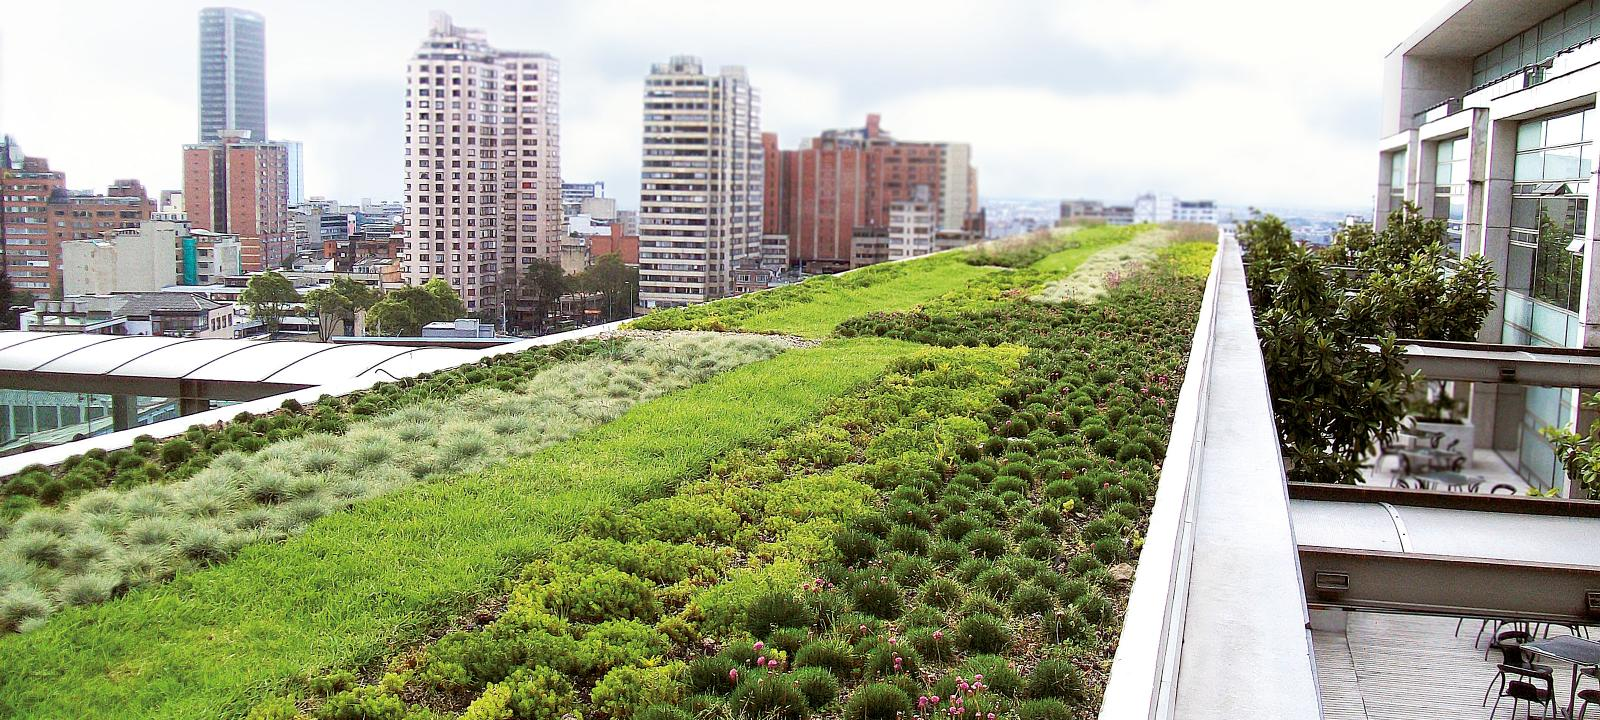 Extensive green roof in a big city